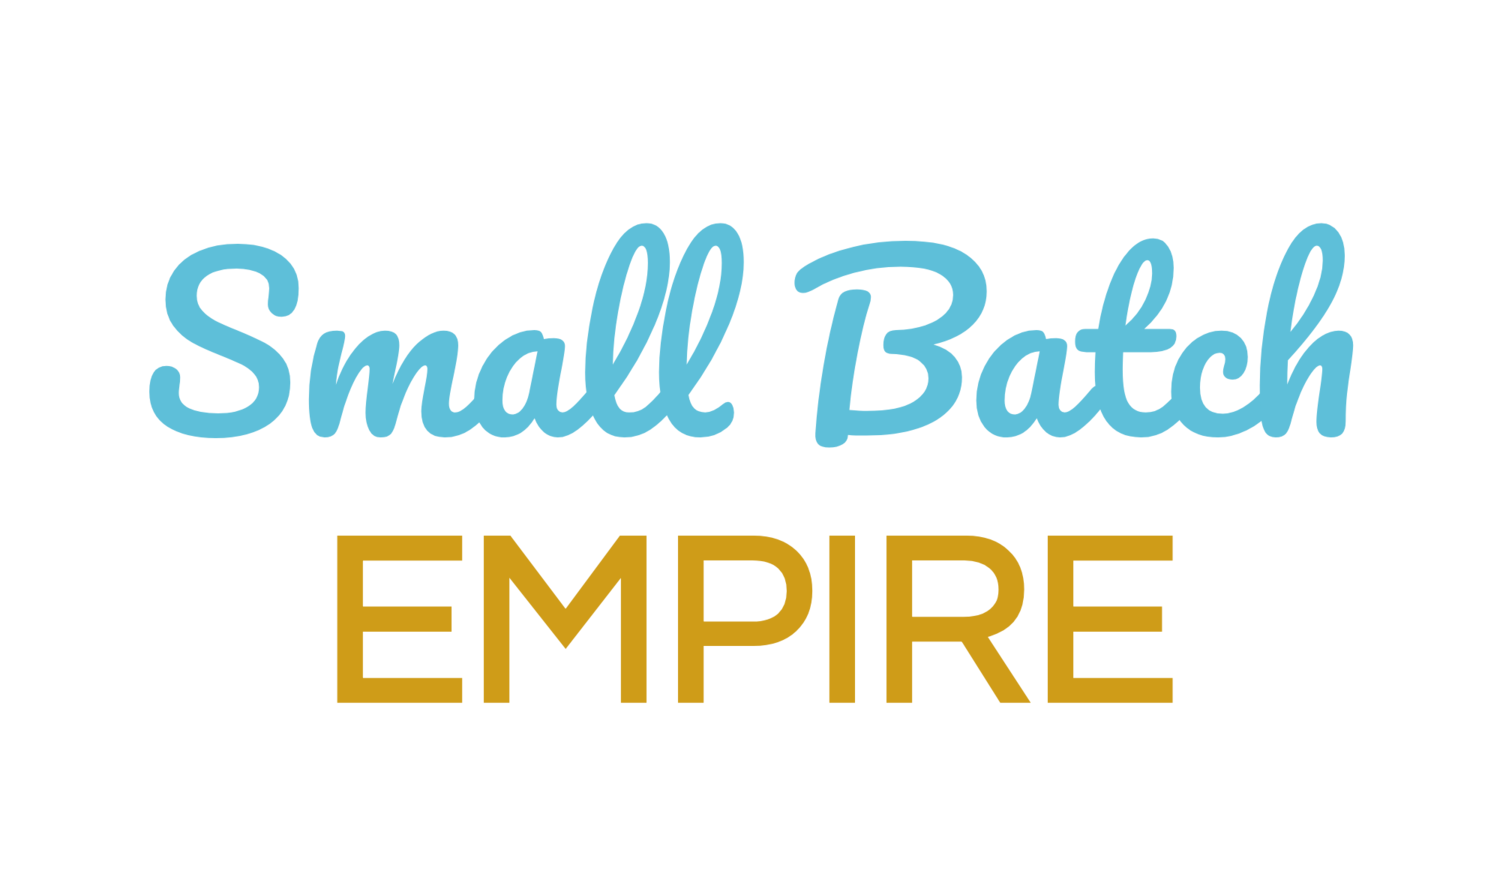 Small Batch Empire